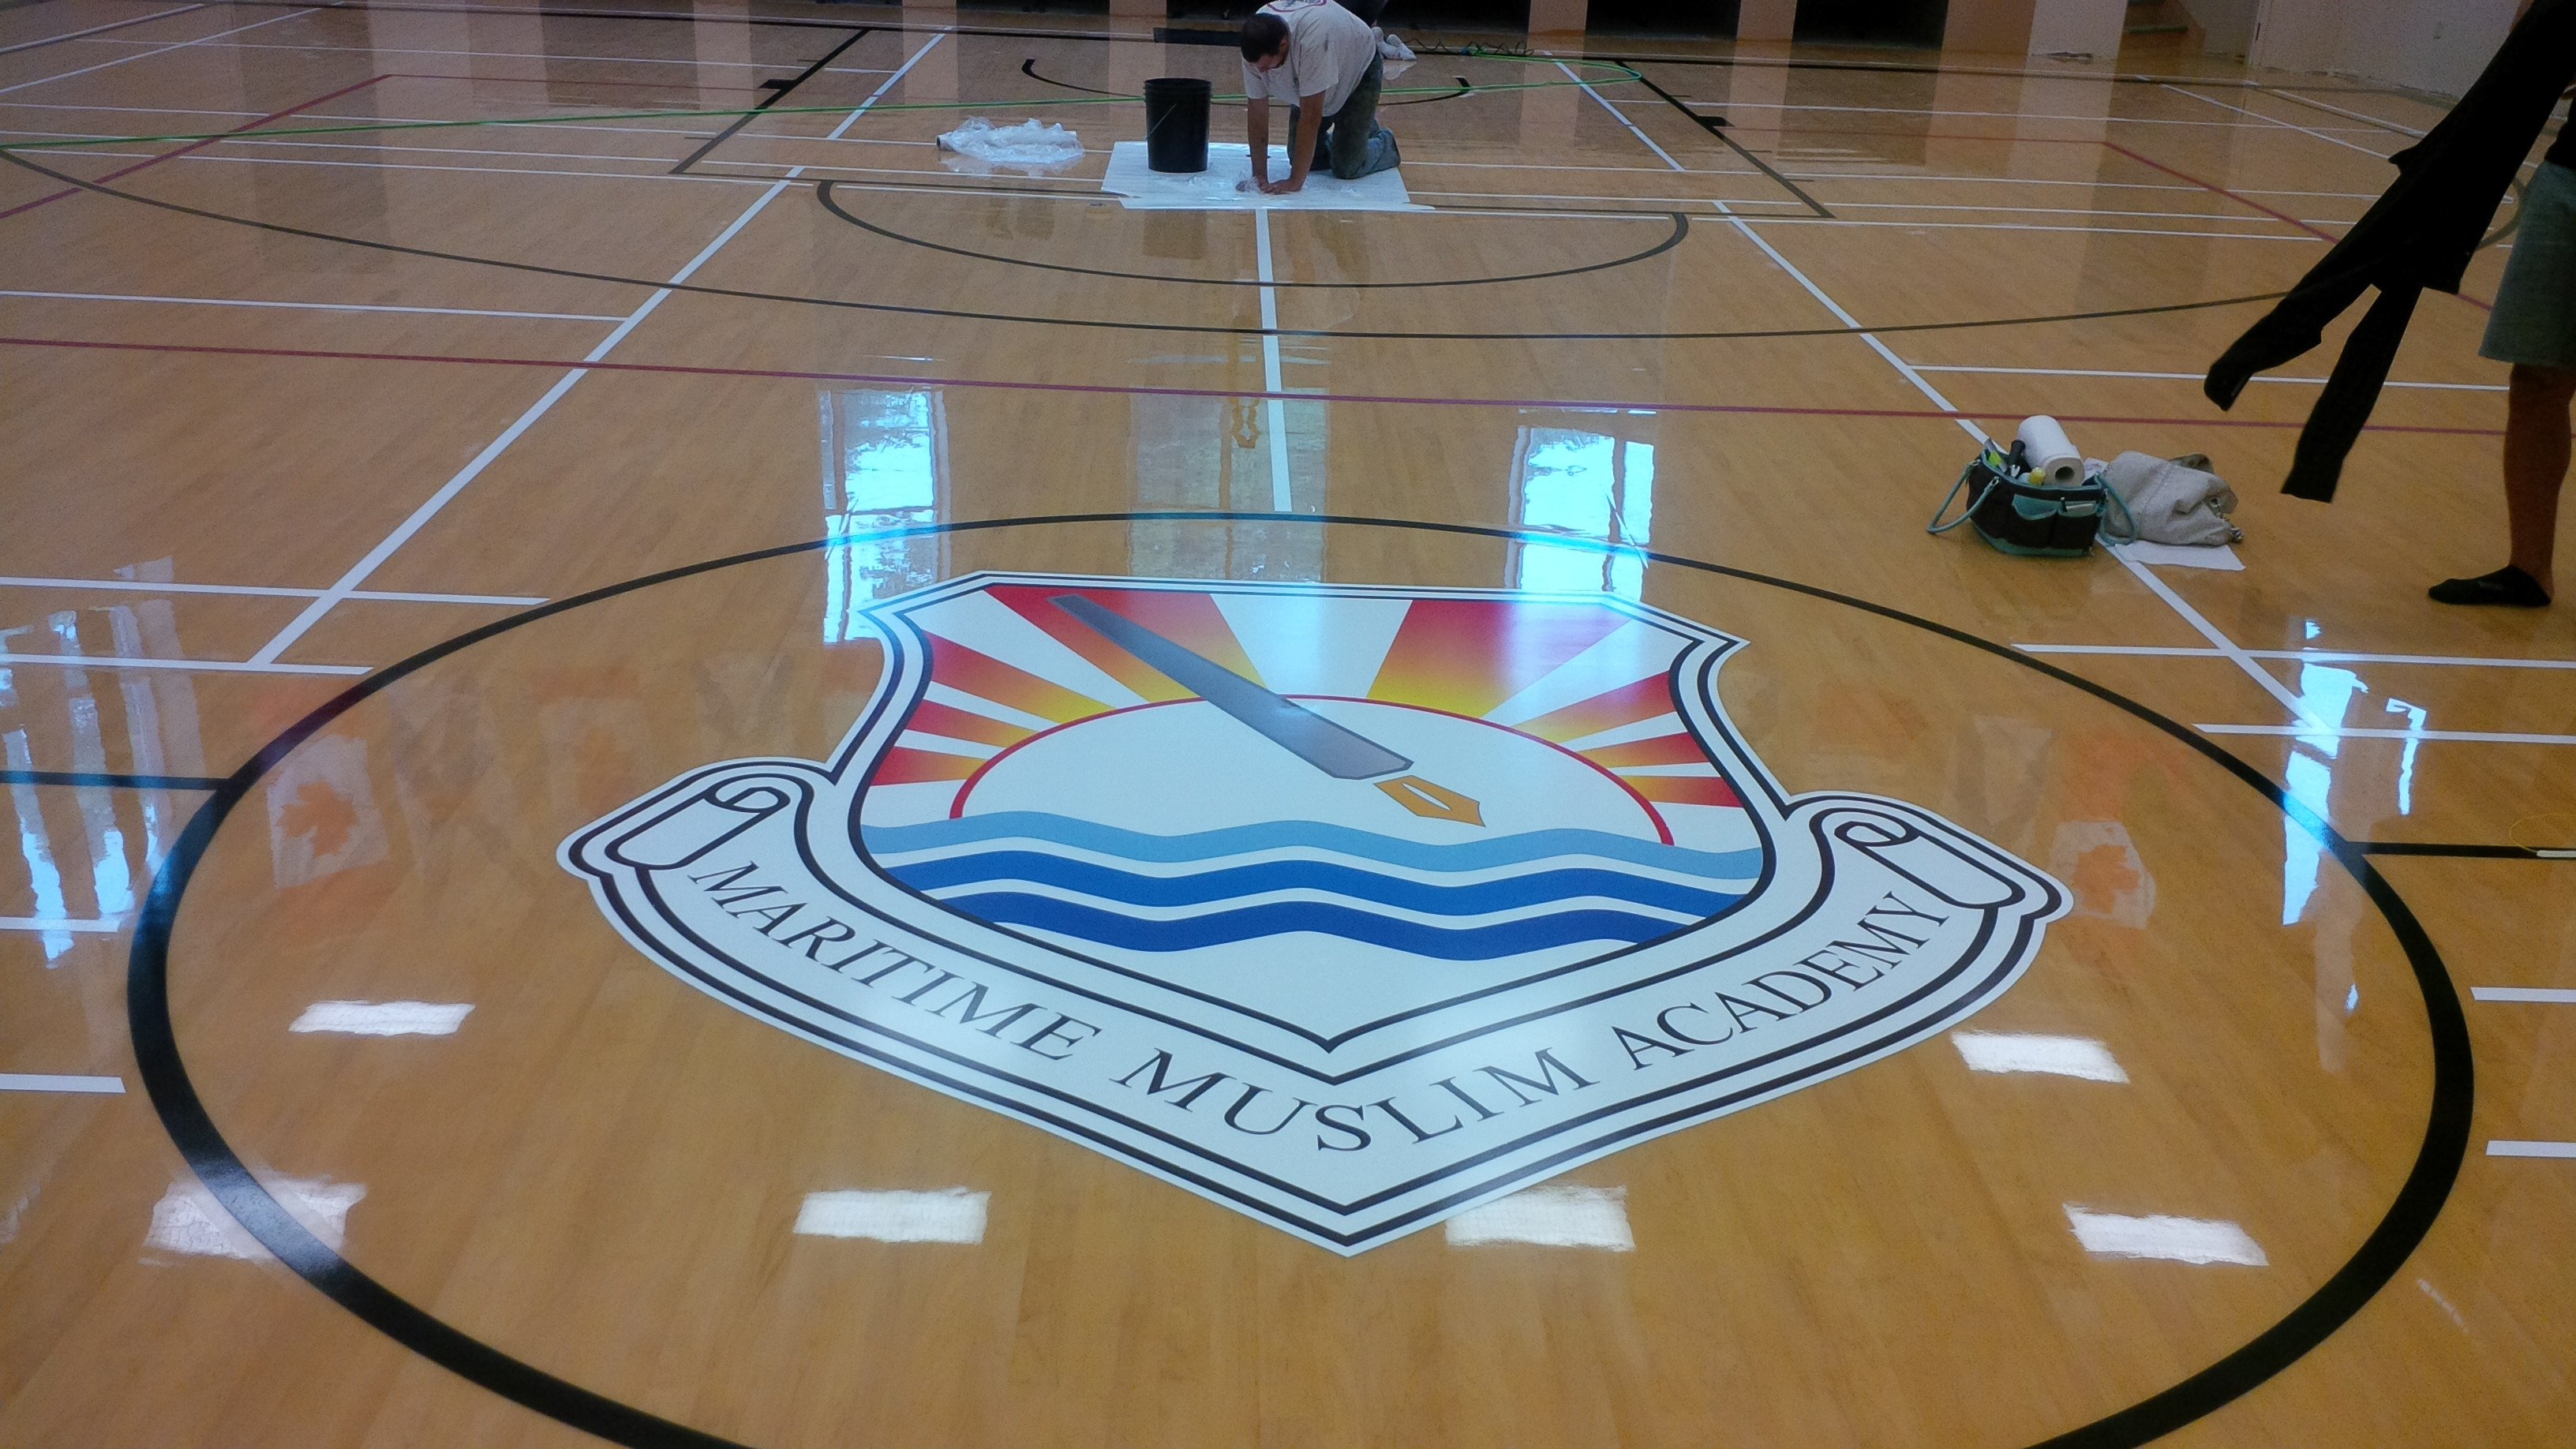 floor graphic Mattatall job Jac install